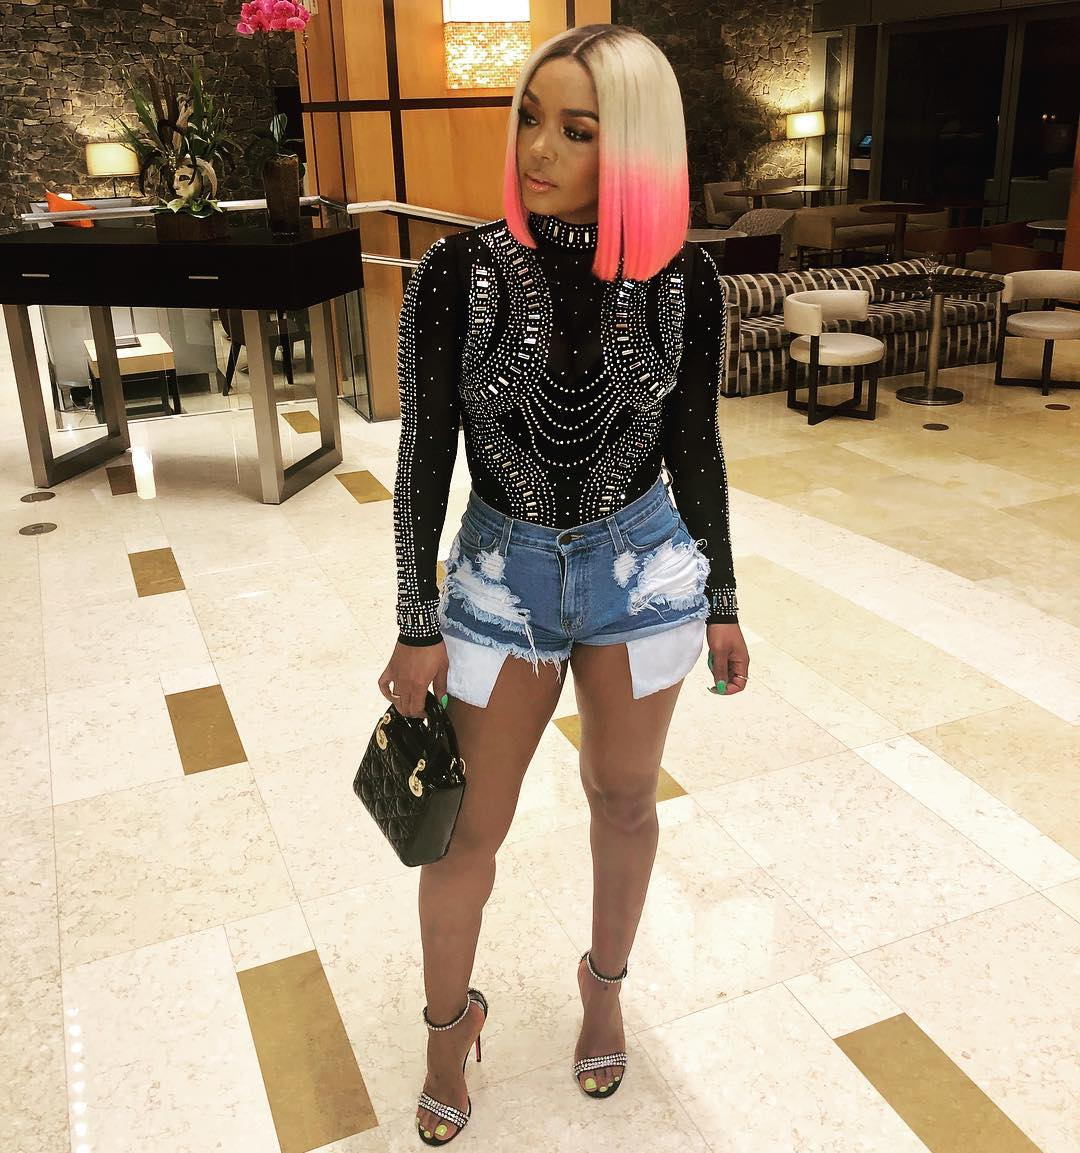 Rasheeda Frost Shares Footage From The Halloween Night At The Frost Bistro - See Why Fans Are Upset